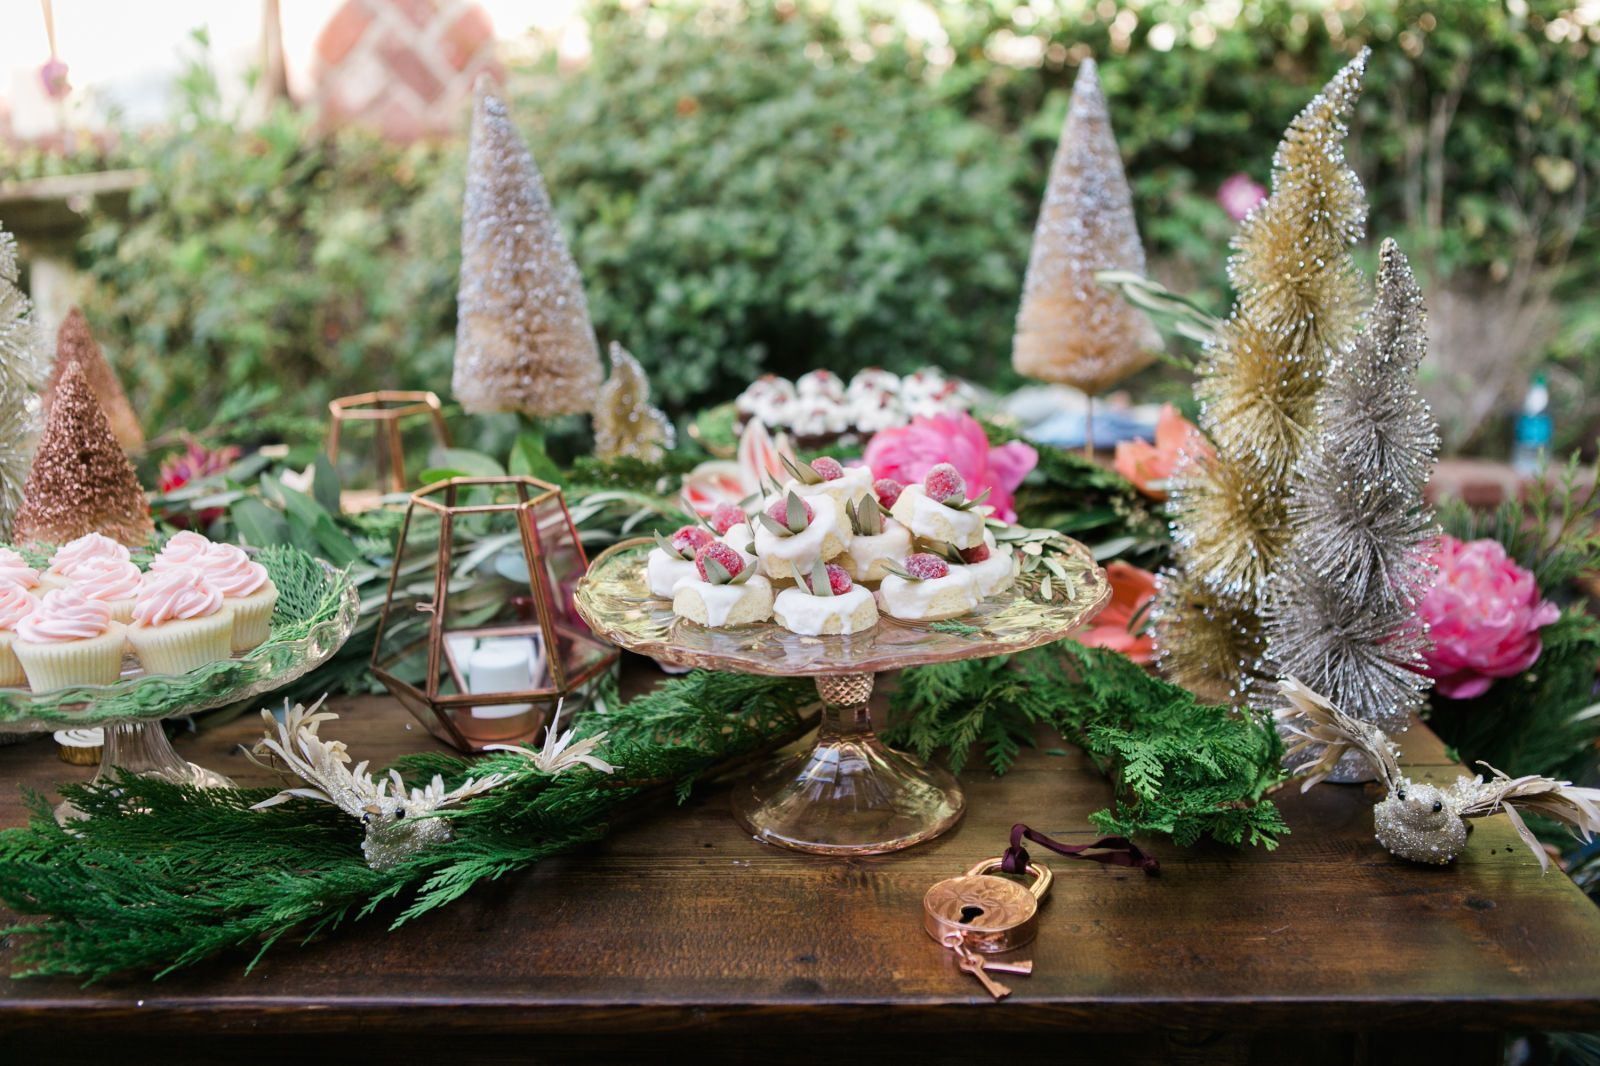 decorating your office for christmas. Turn Your Spread Into A Holiday Fairytale With Enchanting, Whimsical Decor Ideas. Decorating Office For Christmas I